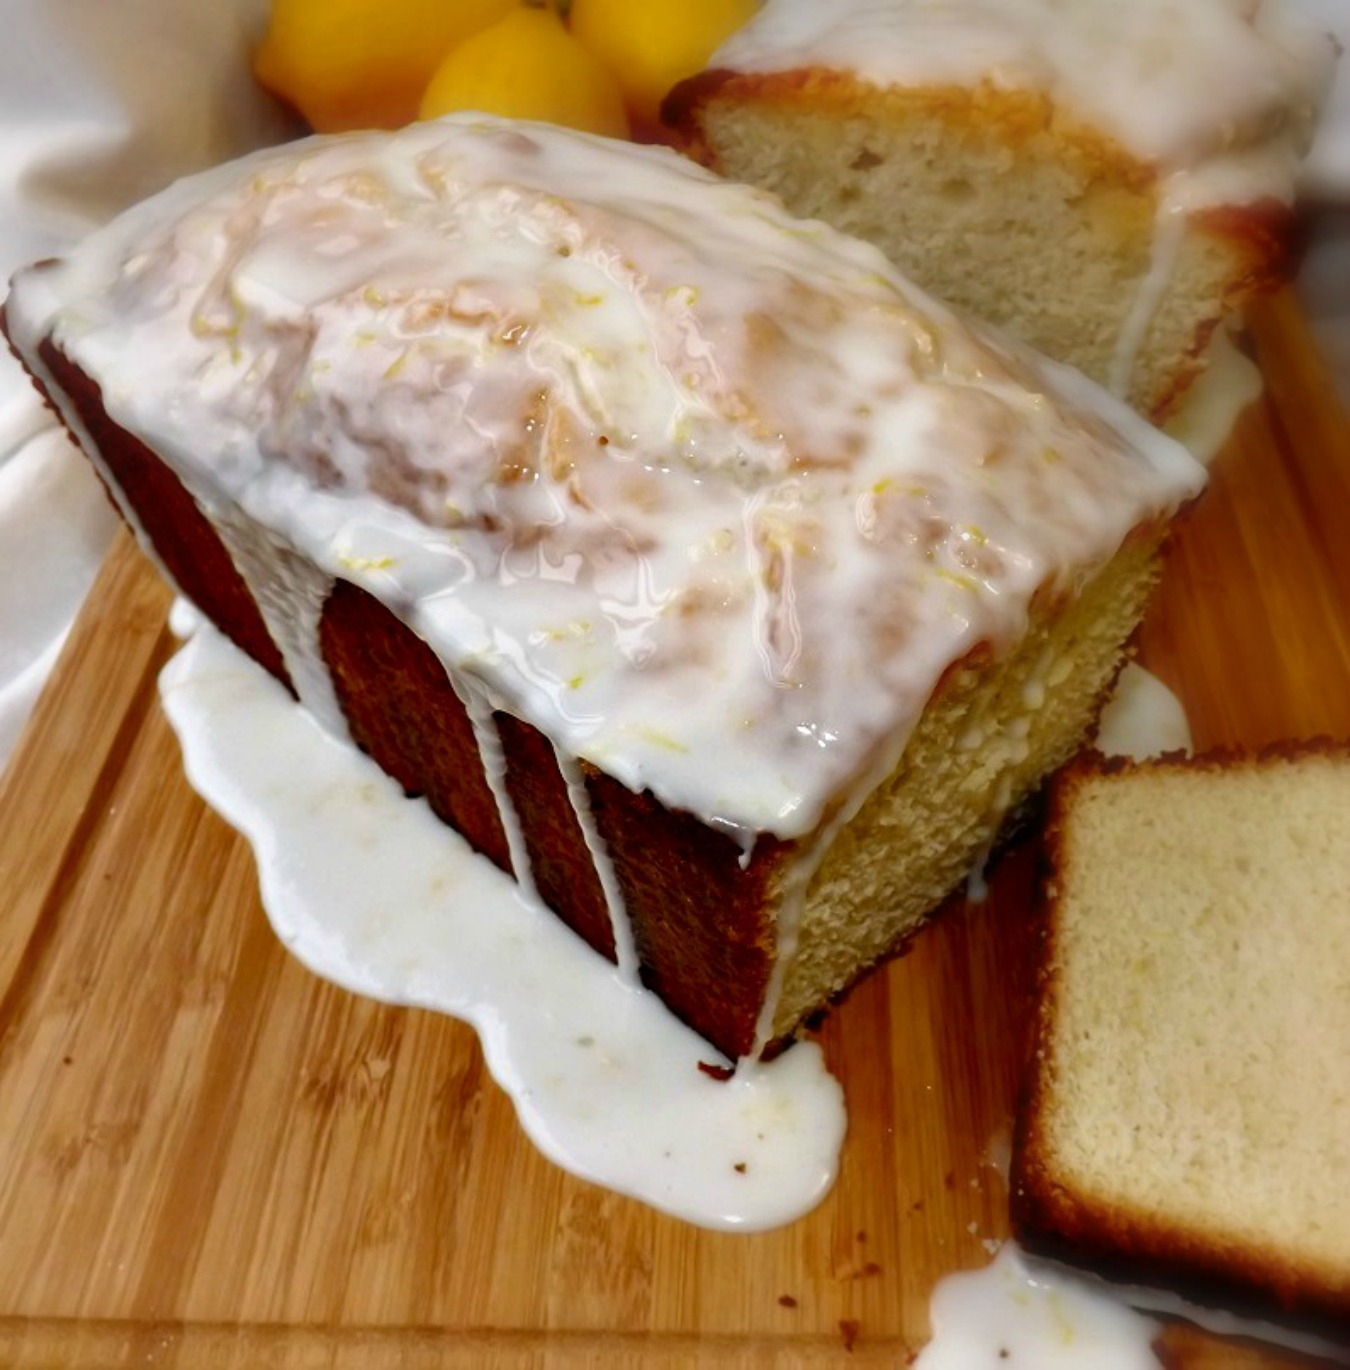 Better Than Starbucks Lemon Cake